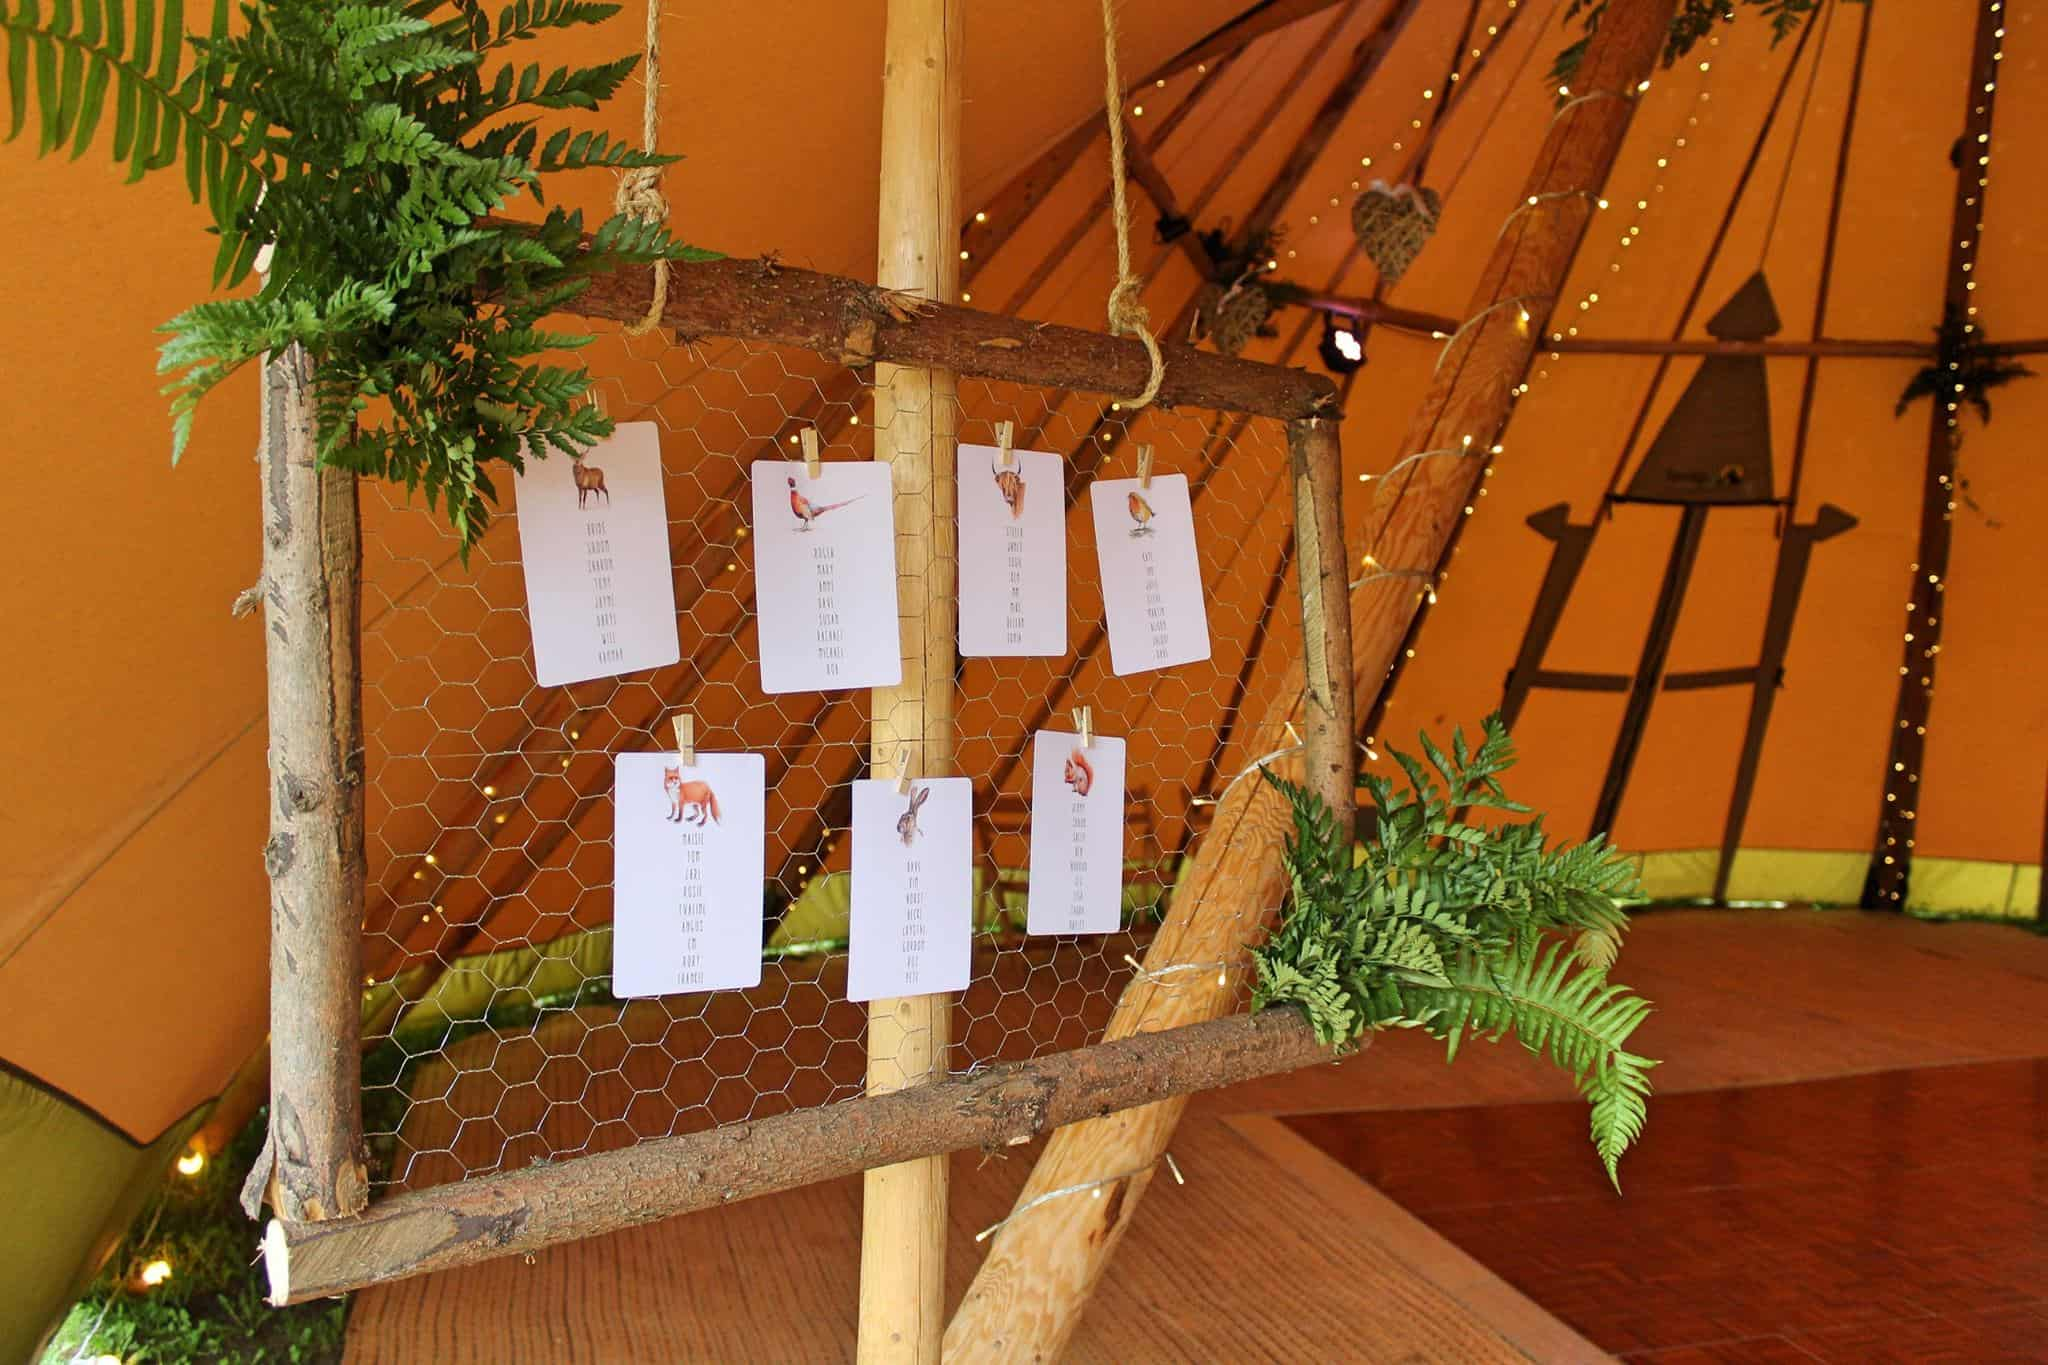 Seating Plan - Woodland themed styling by The Rustic Wedding Company